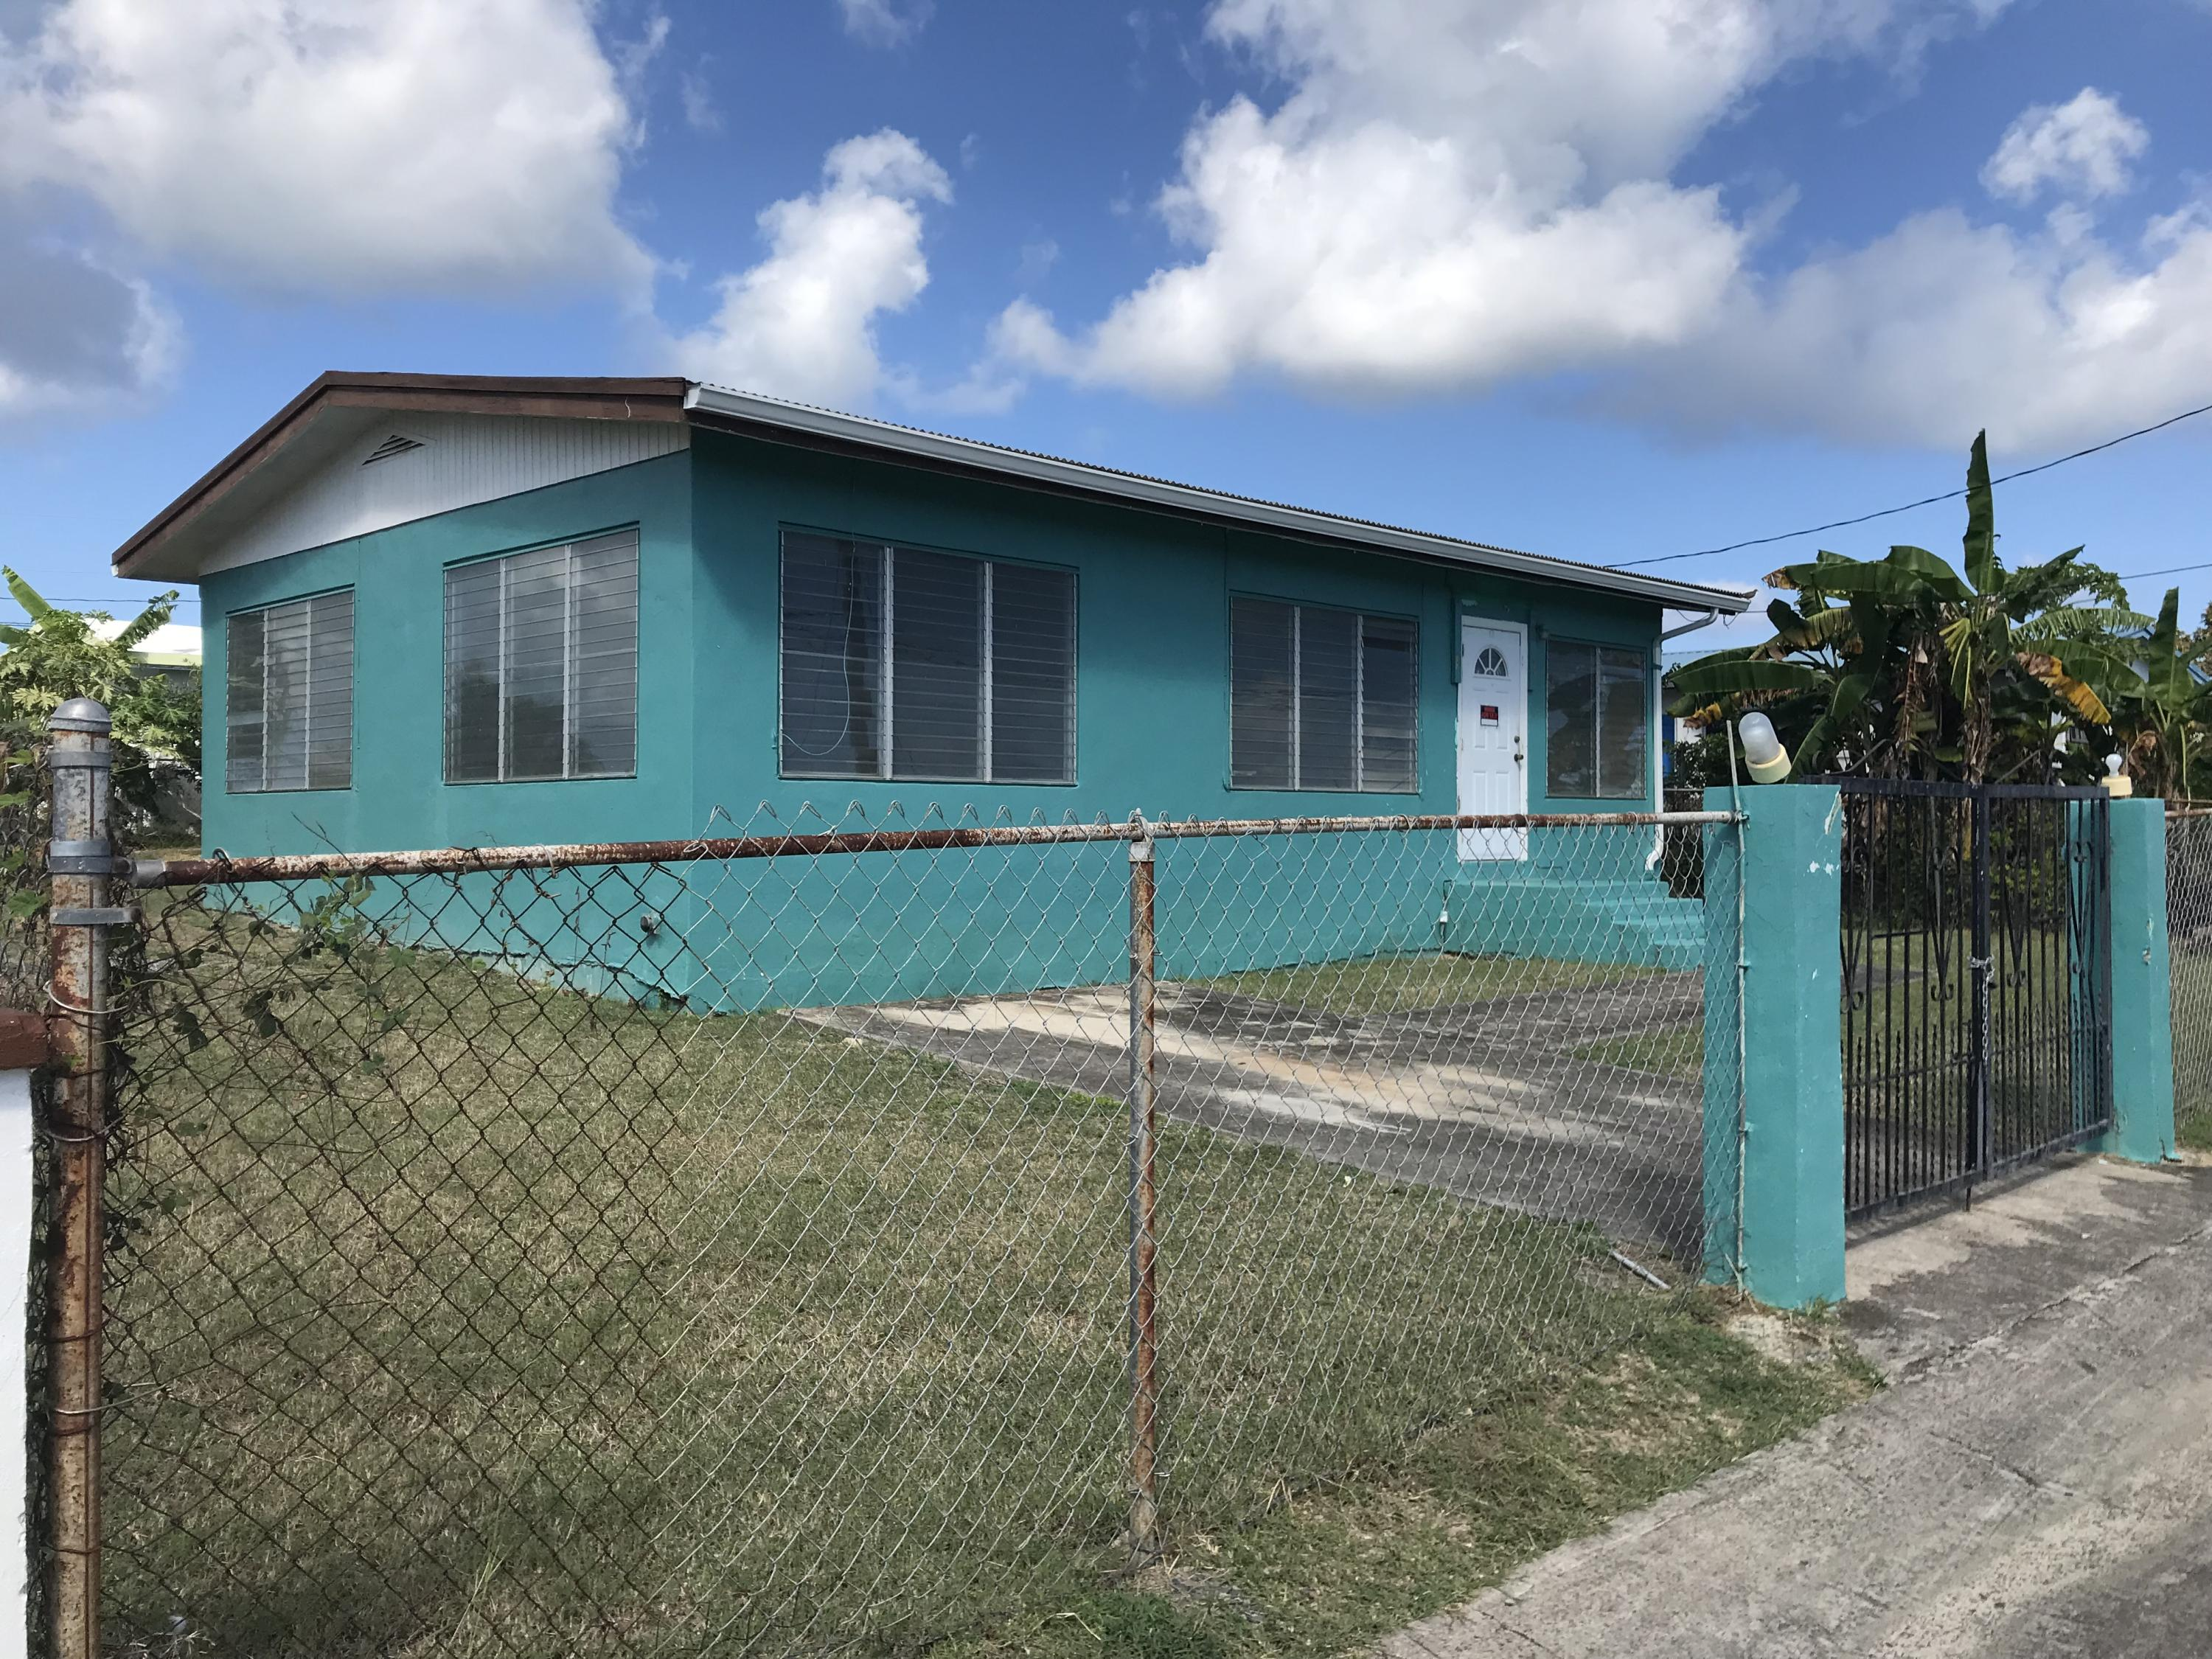 Single Family Home for Sale at 154 Strawberry Hill KI 154 Strawberry Hill KI St Croix, Virgin Islands 00850 United States Virgin Islands